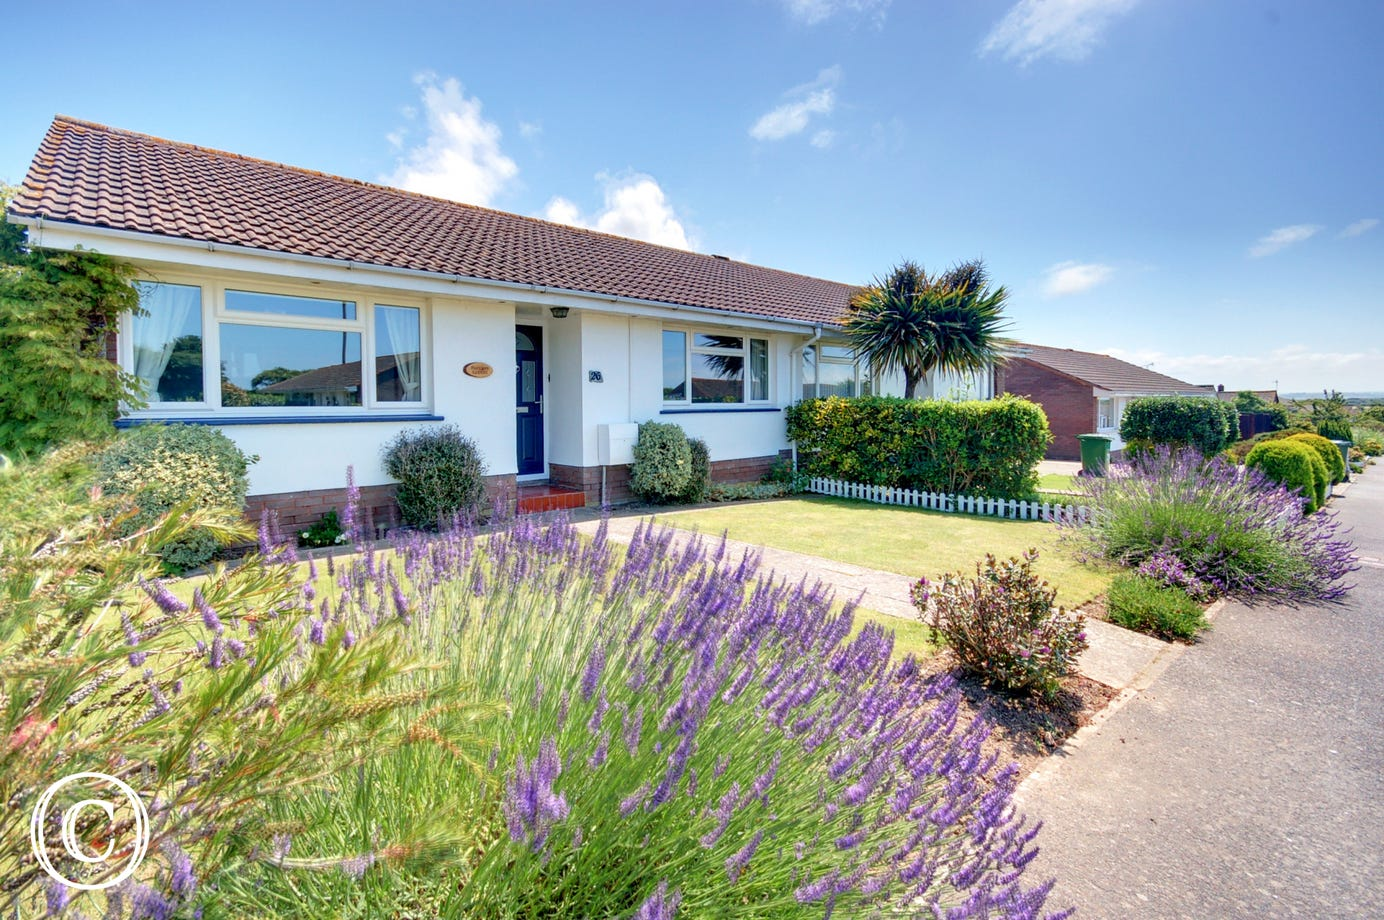 This stylish modern bungalow is perfect for couples and small families